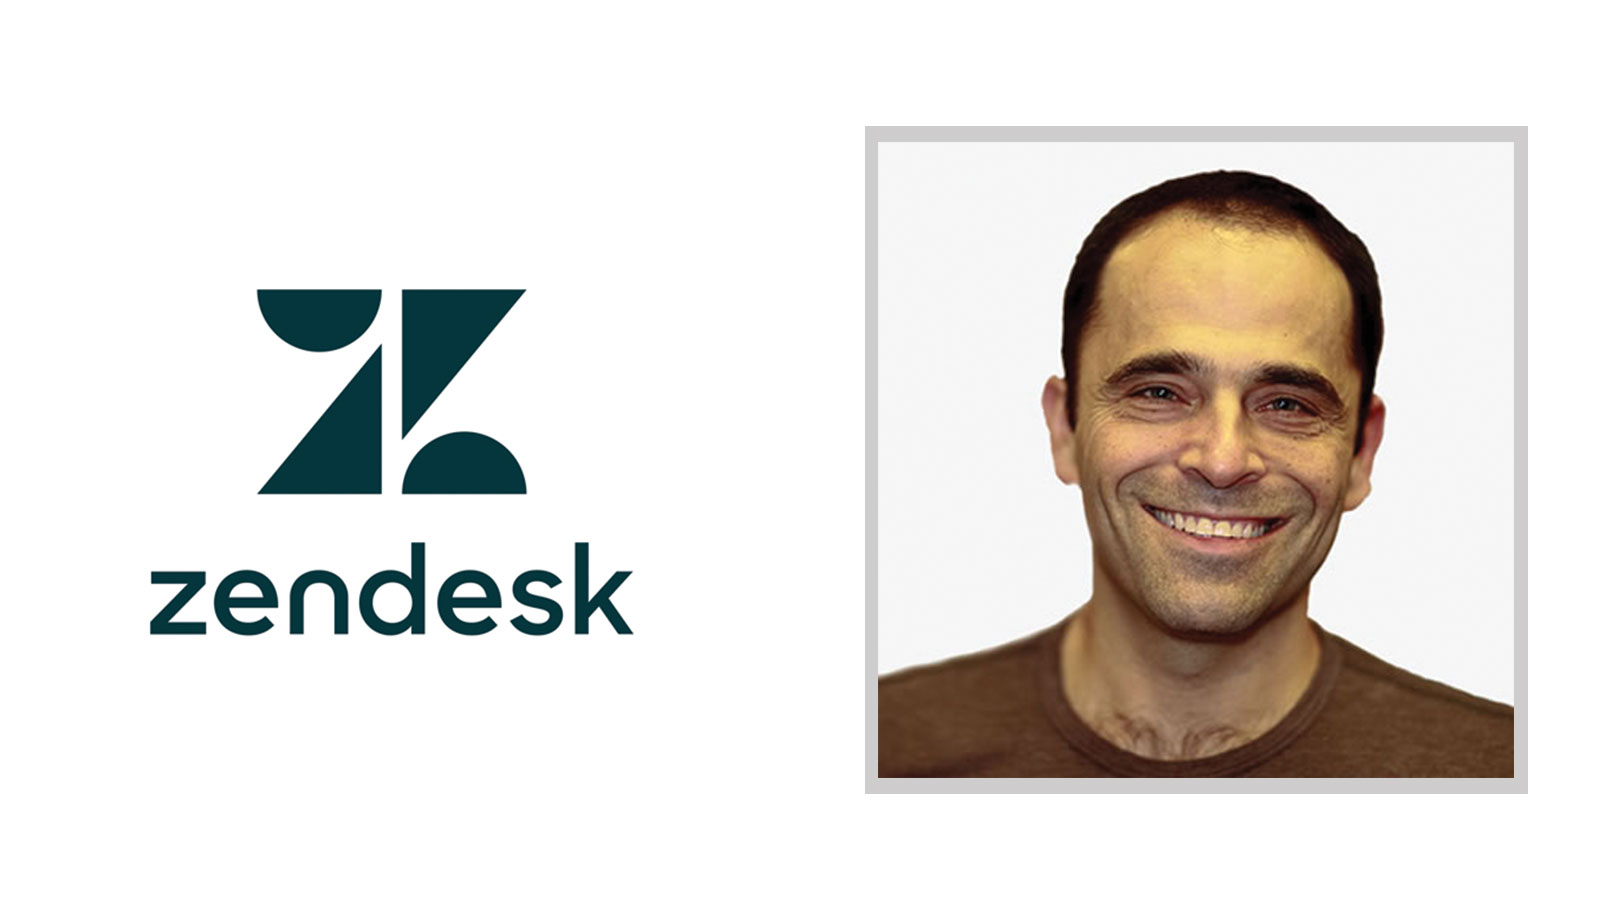 MarTech Series speaks to Sam Boonin, VP Product Strategy at Zendesk